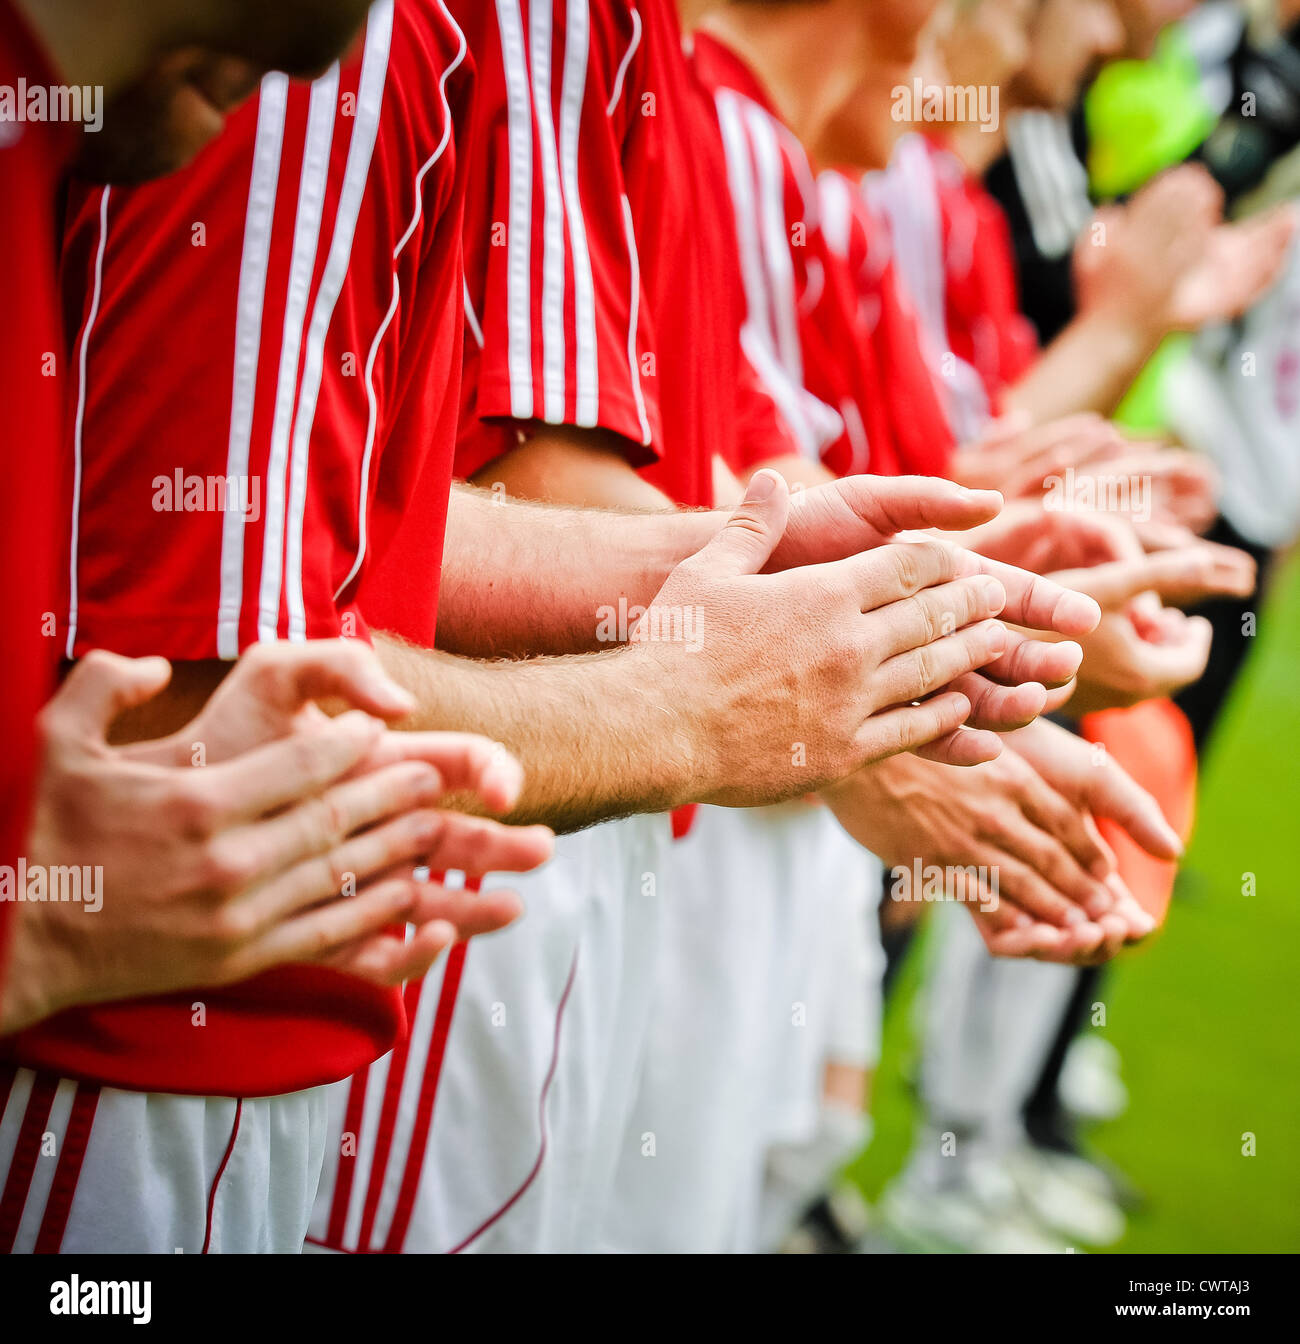 Three soccer players on soccer pitch applauding - Stock Image